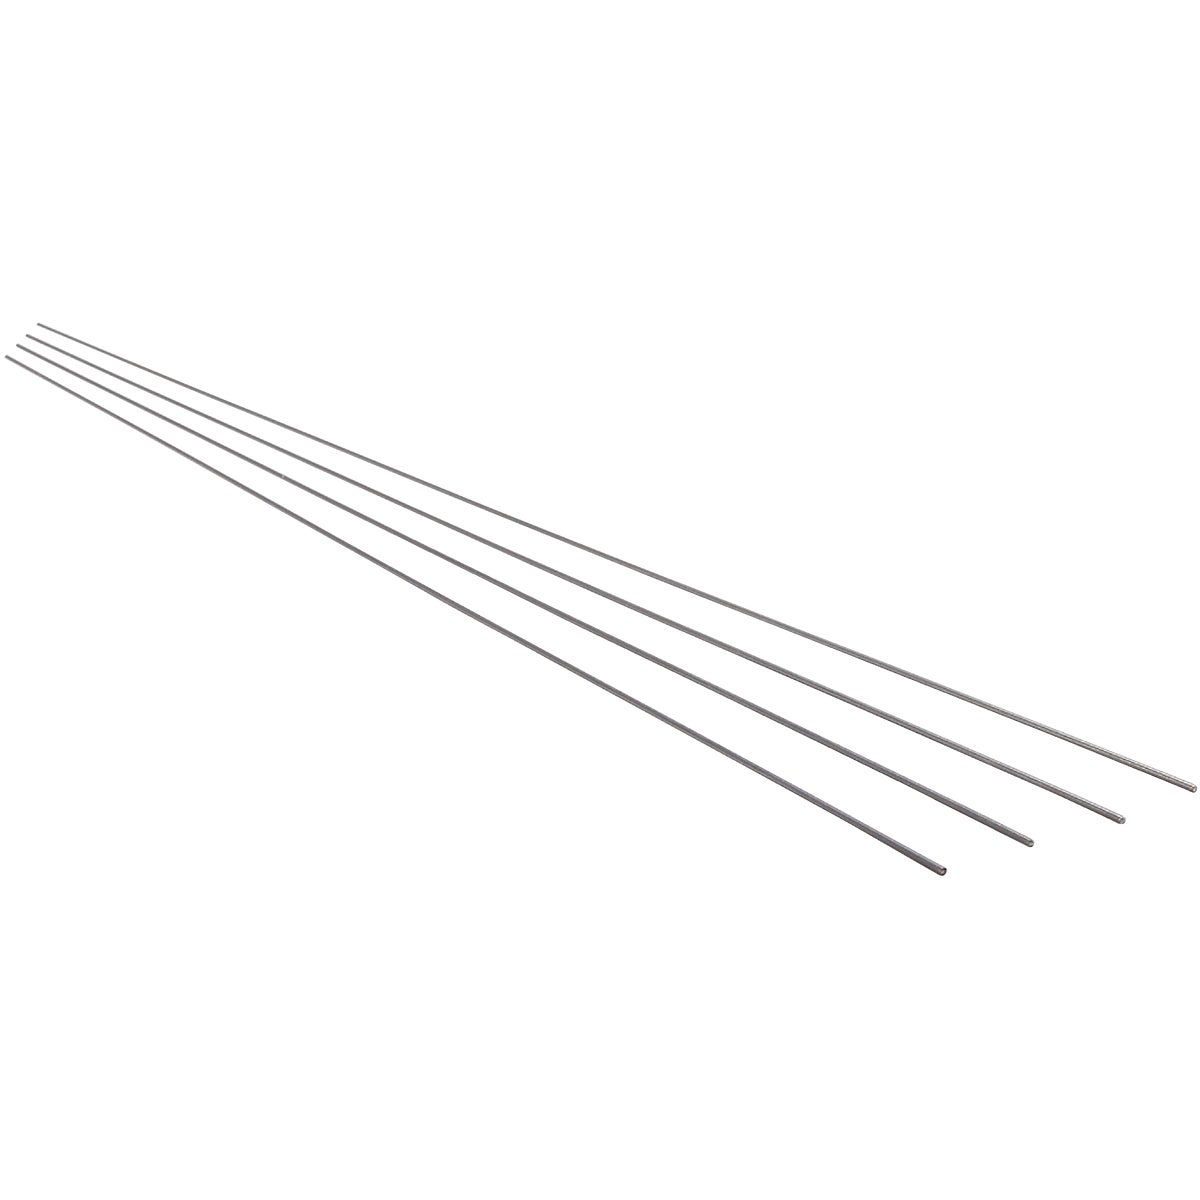 1/8X36 9EACH MUSIC WIRE - 507 by K&s Precision Metals